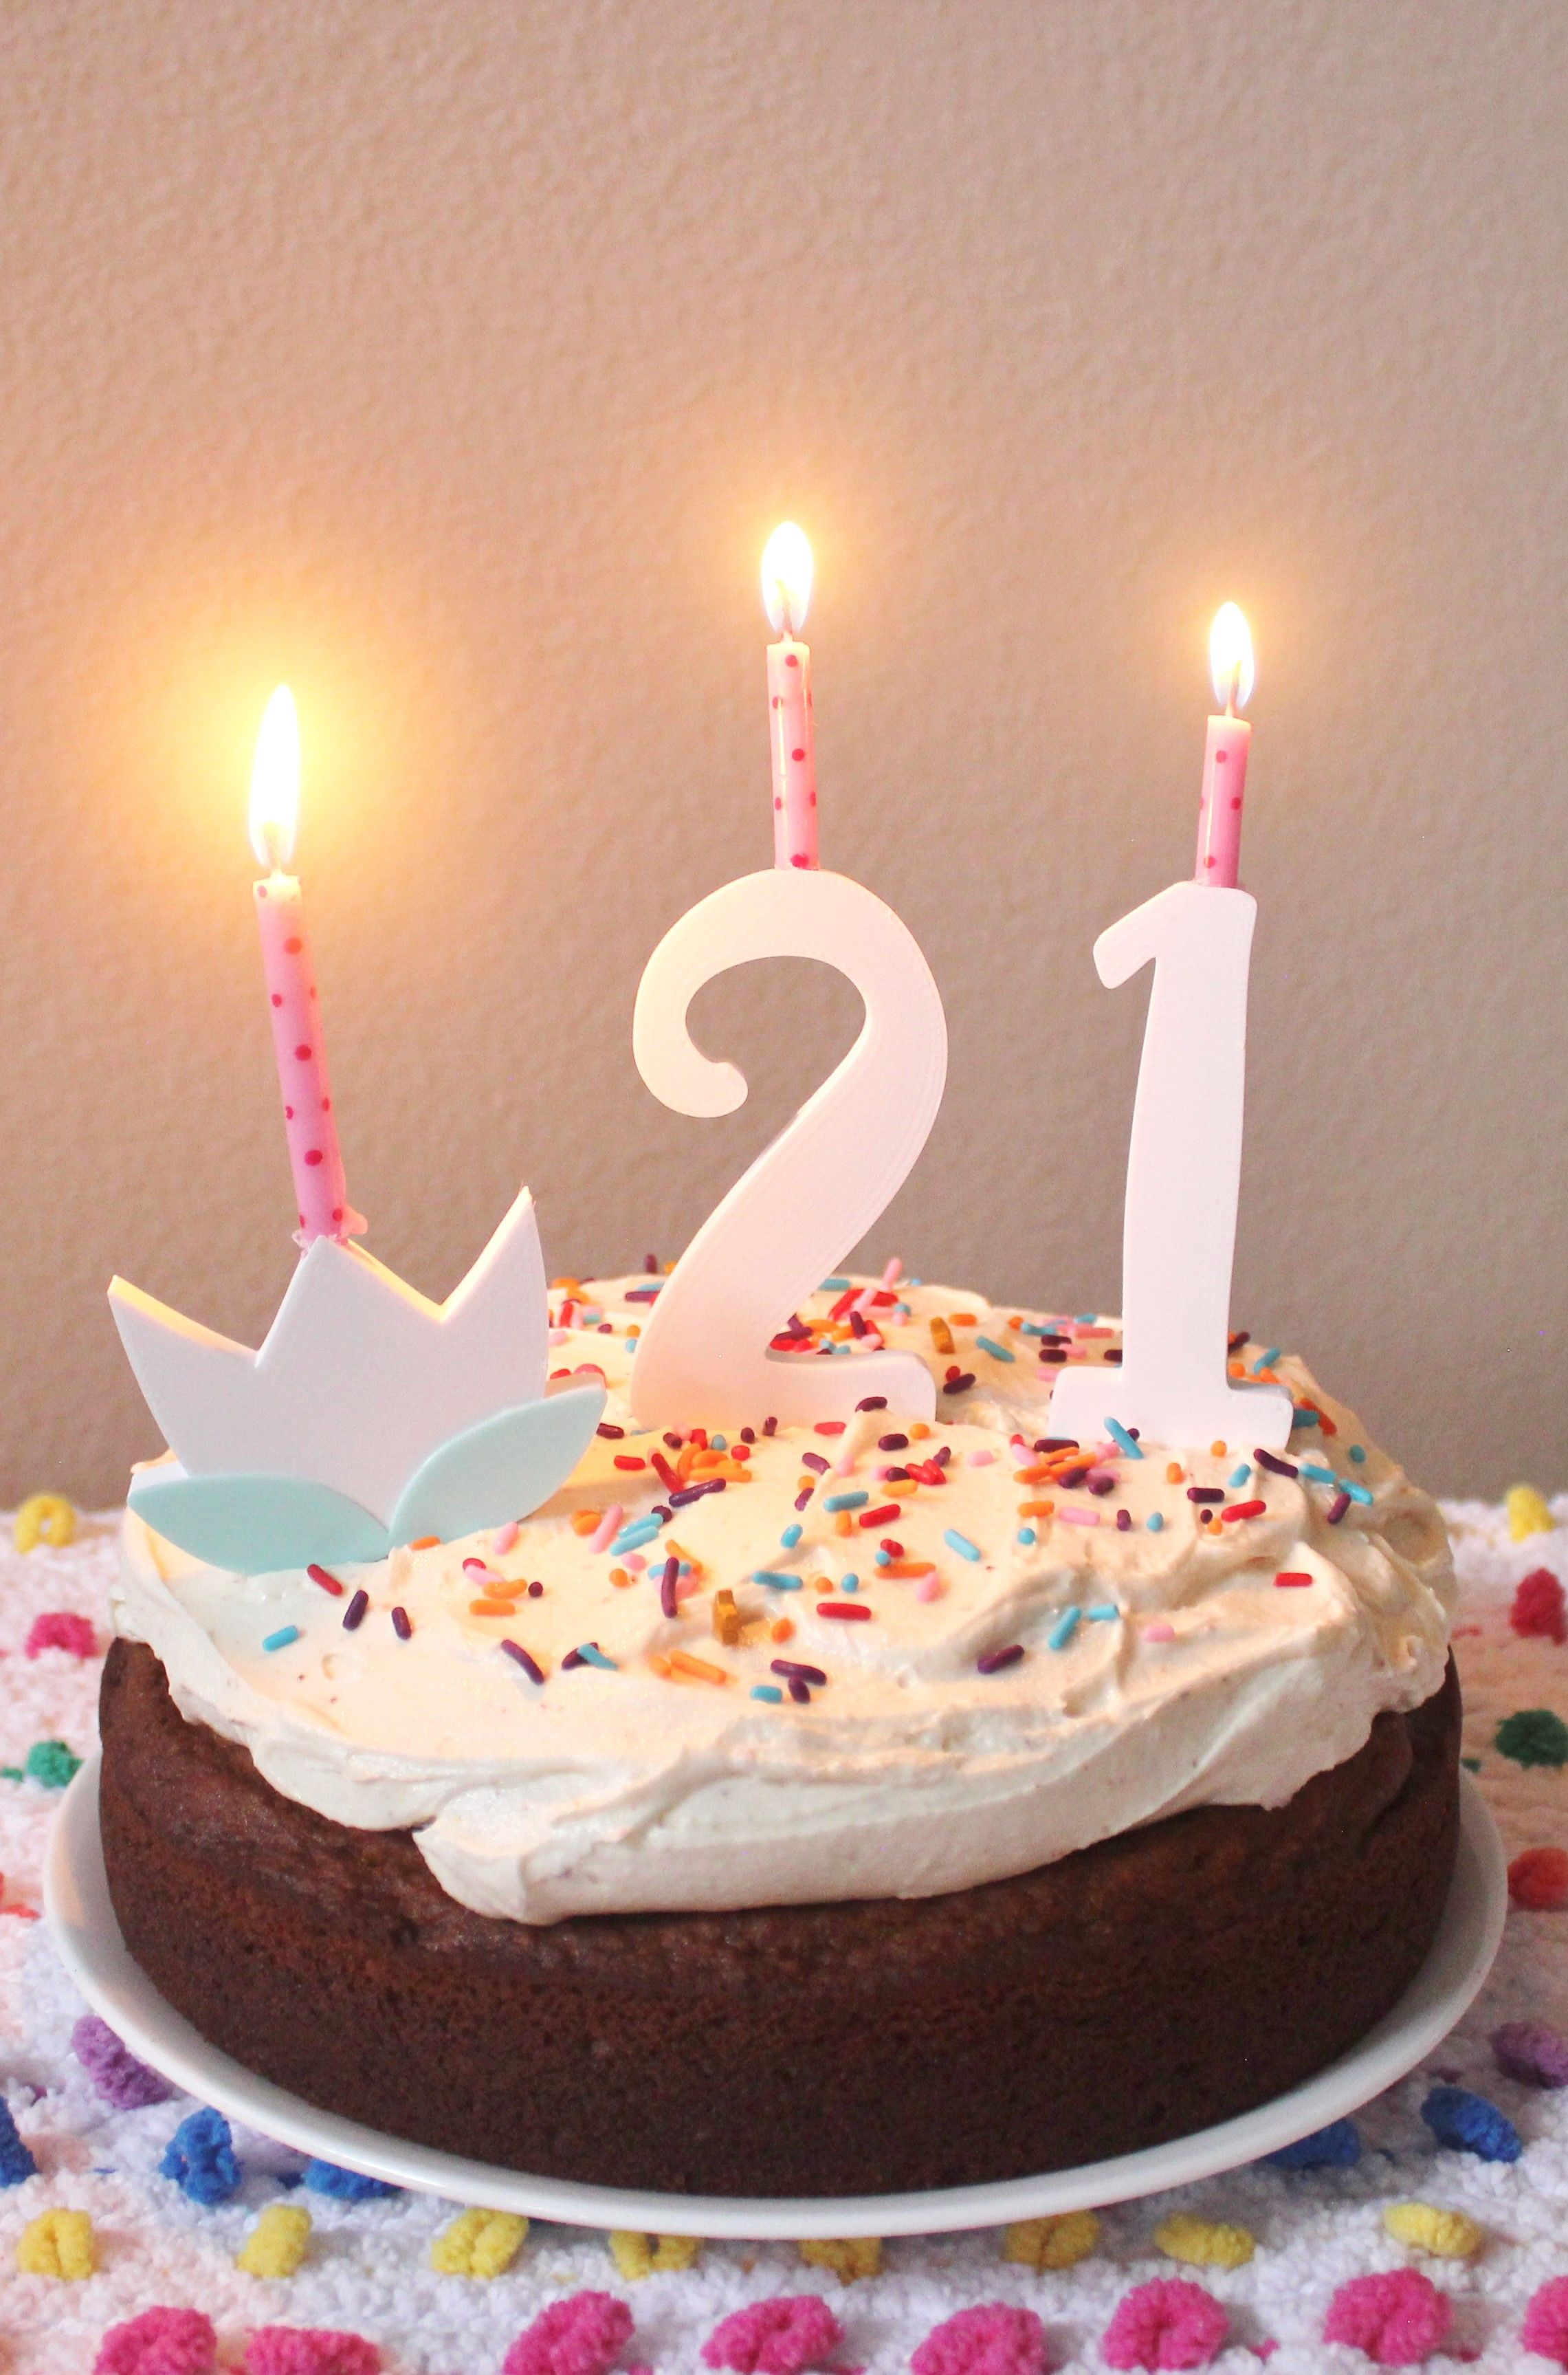 st birthday cake idea reusable age number candles or toppers and flower can hold standard also rh pinterest